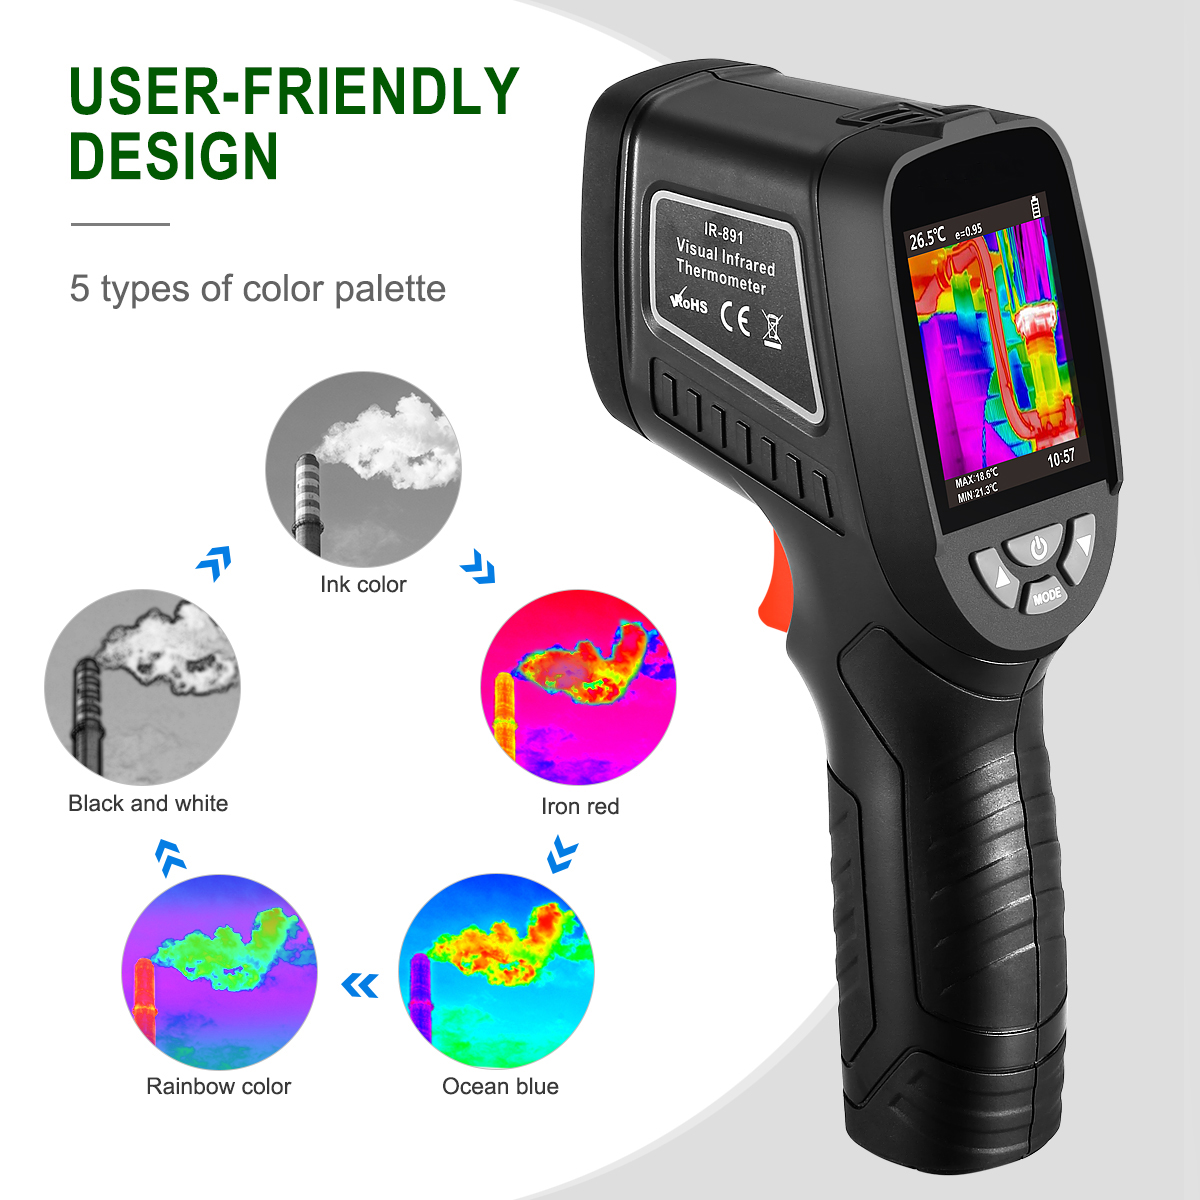 Professional Thermal Imaging Camera Infrared IR Digital Thermometer Image Visual